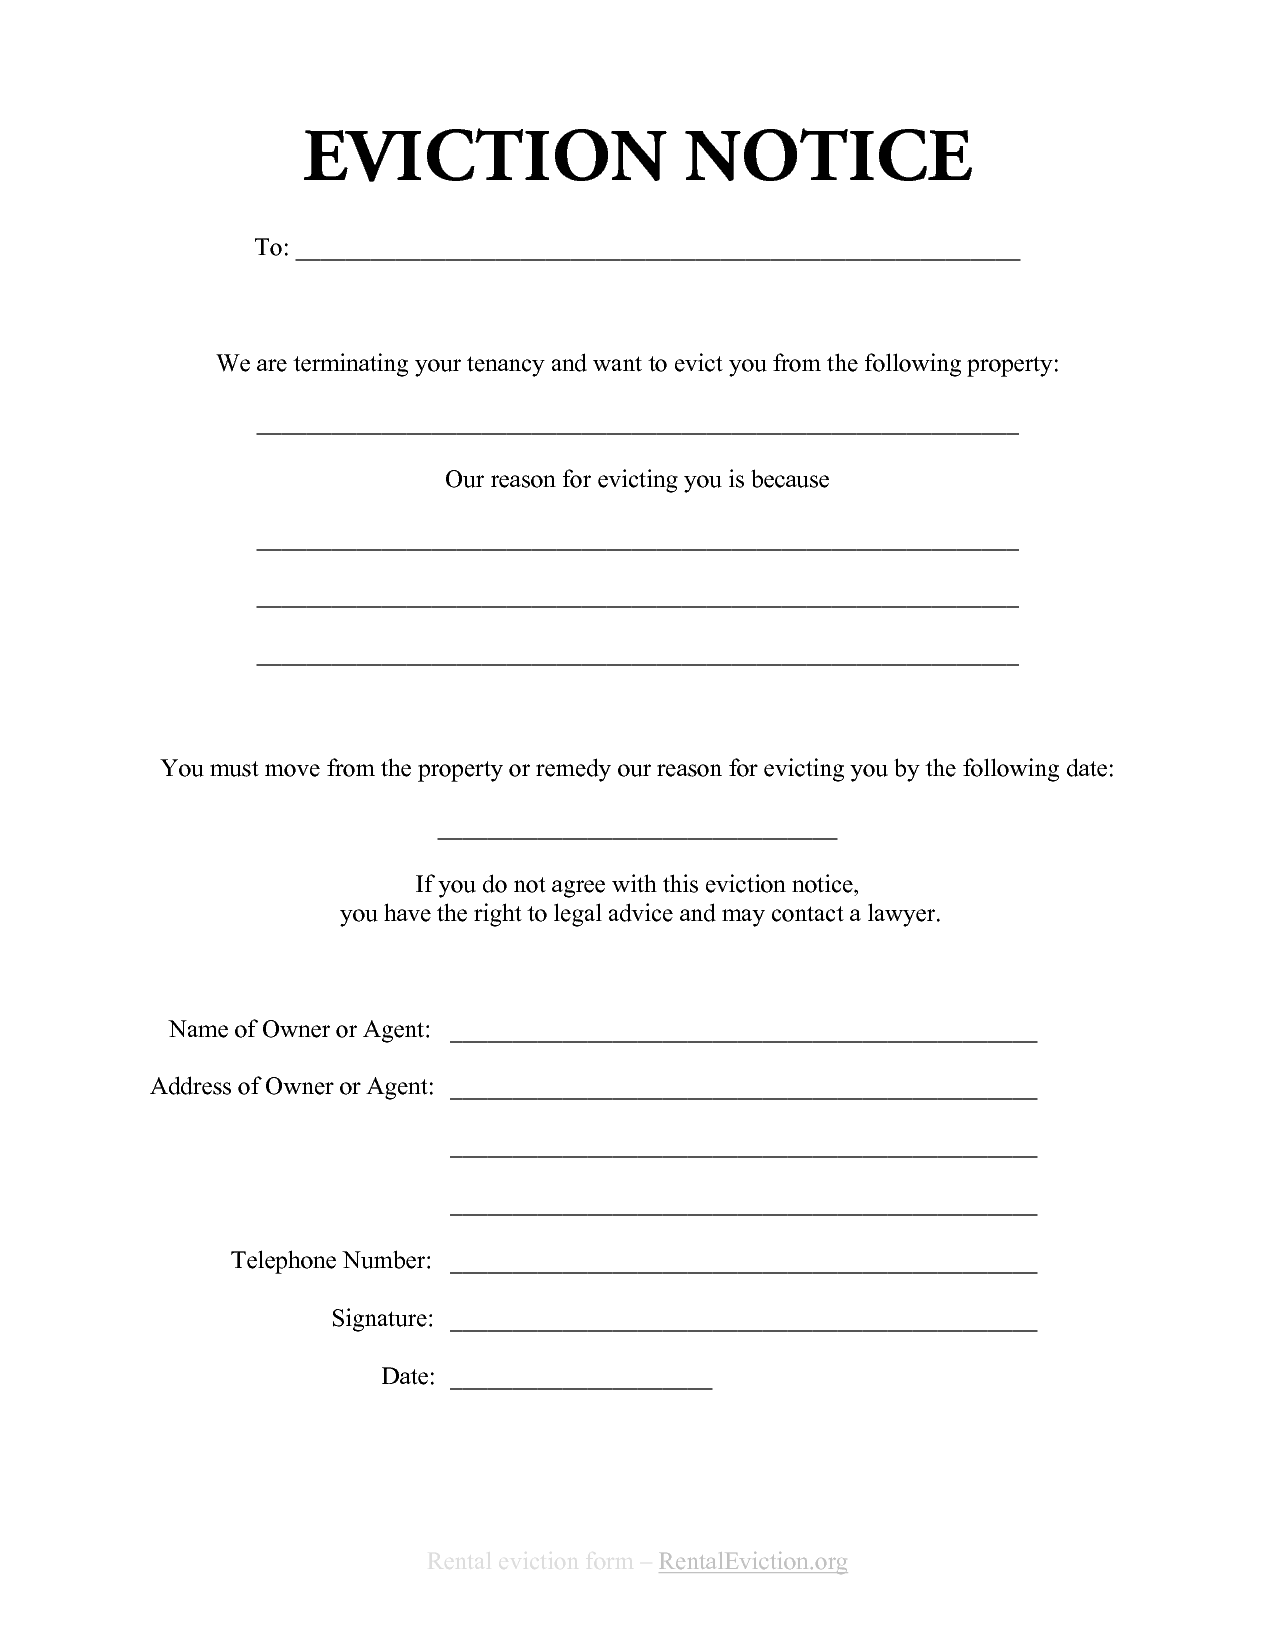 Free Print Out Eviction Notices free rental eviction notice – Copy of an Eviction Notice